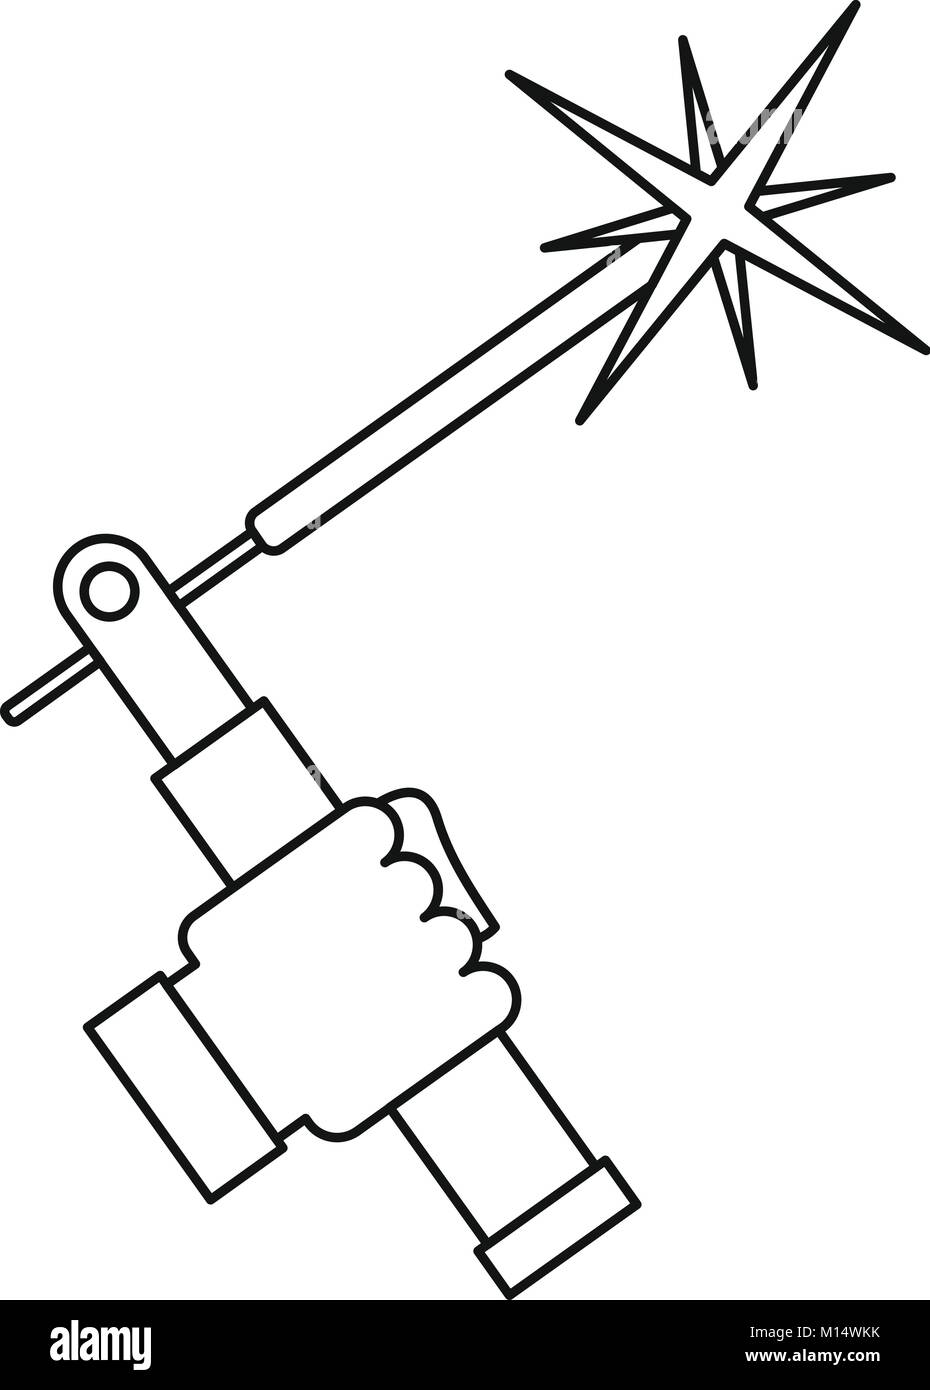 hight resolution of mig welding torch in hand icon outline